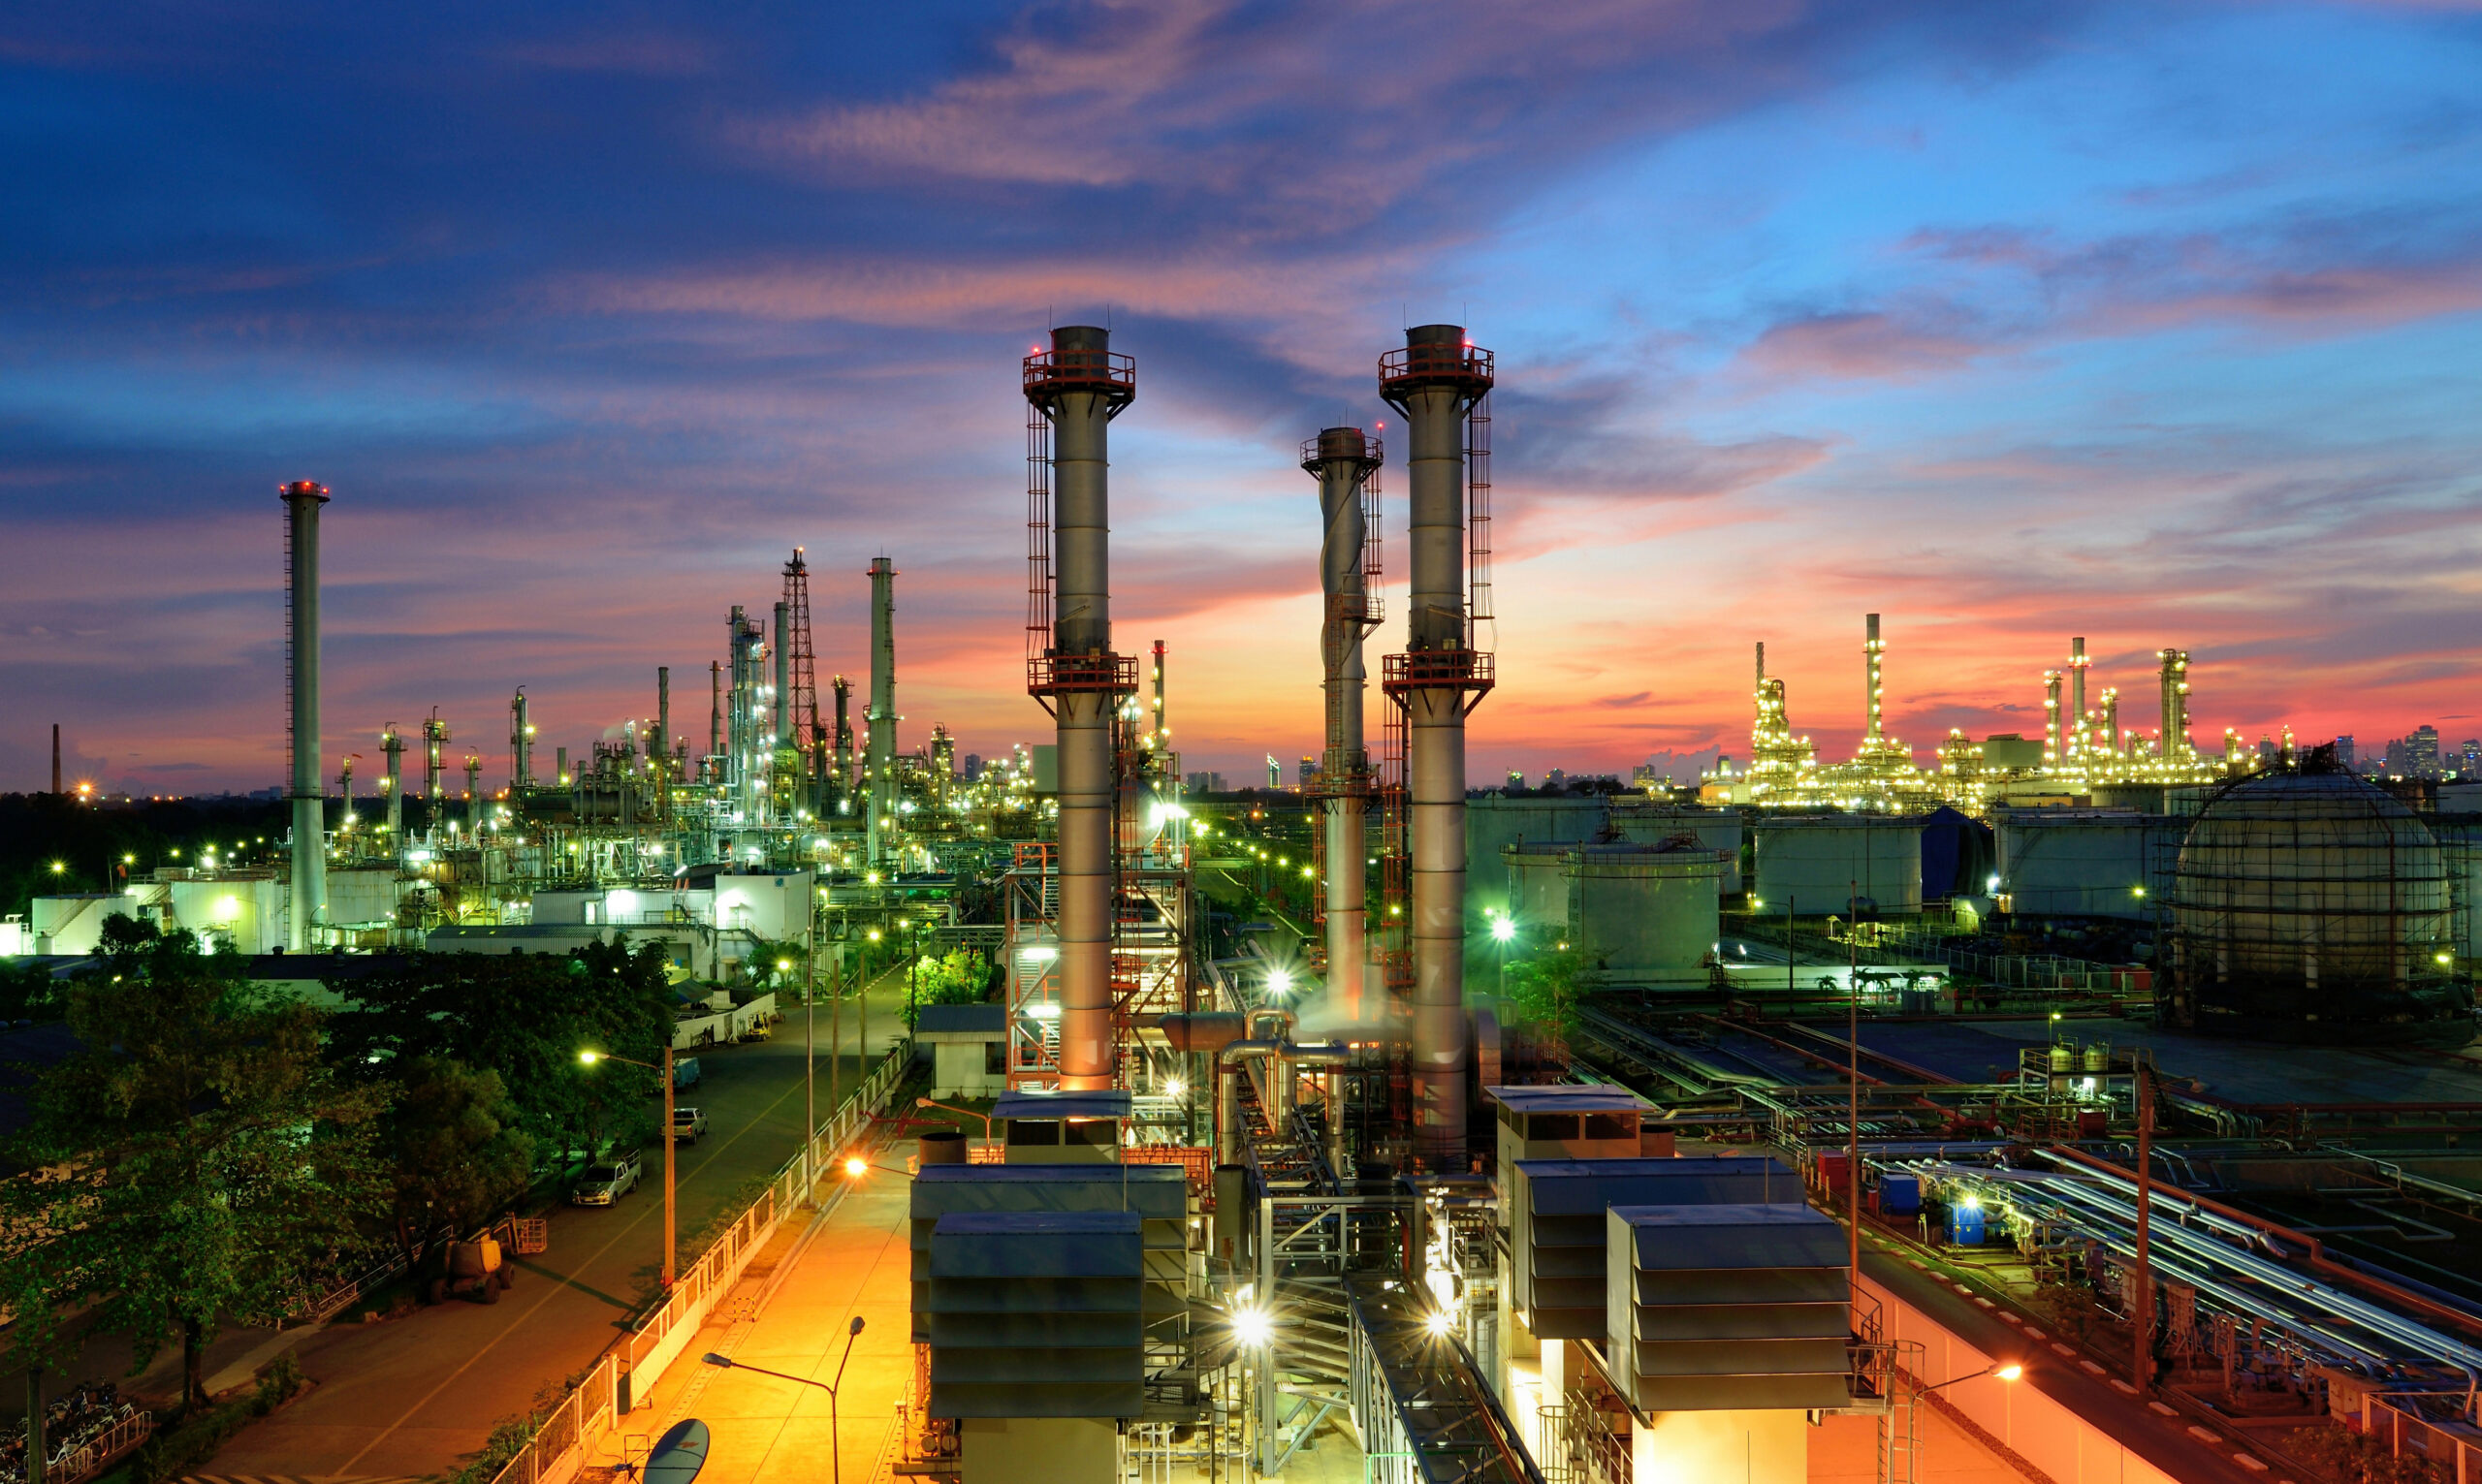 Oil,Refinery,Plant,At,Sunset,,The,Night,View,Of,Petroleum